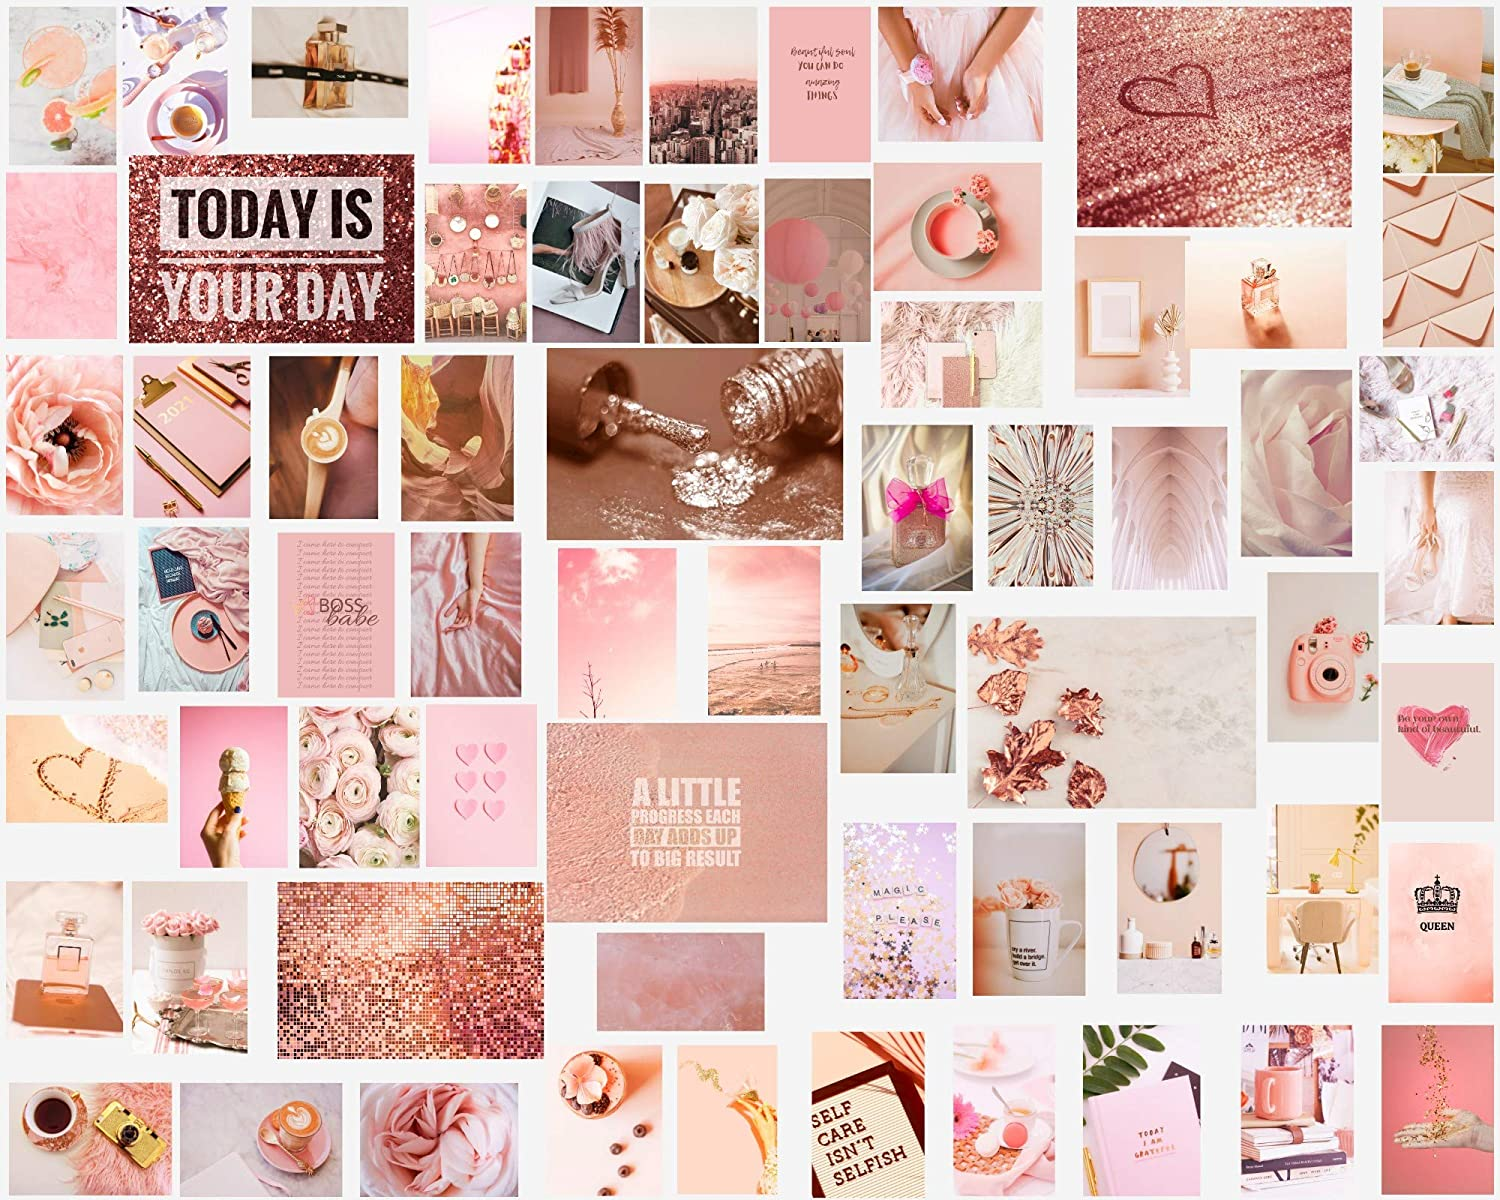 Pinky Lemon Wall Collage Kit Aesthetic Pictures, Dusty Pink Rose Gold Room Decor for Teen Girls, Photo Collage Kit Set 60pc 4x6'' 6 Posters 8x11''